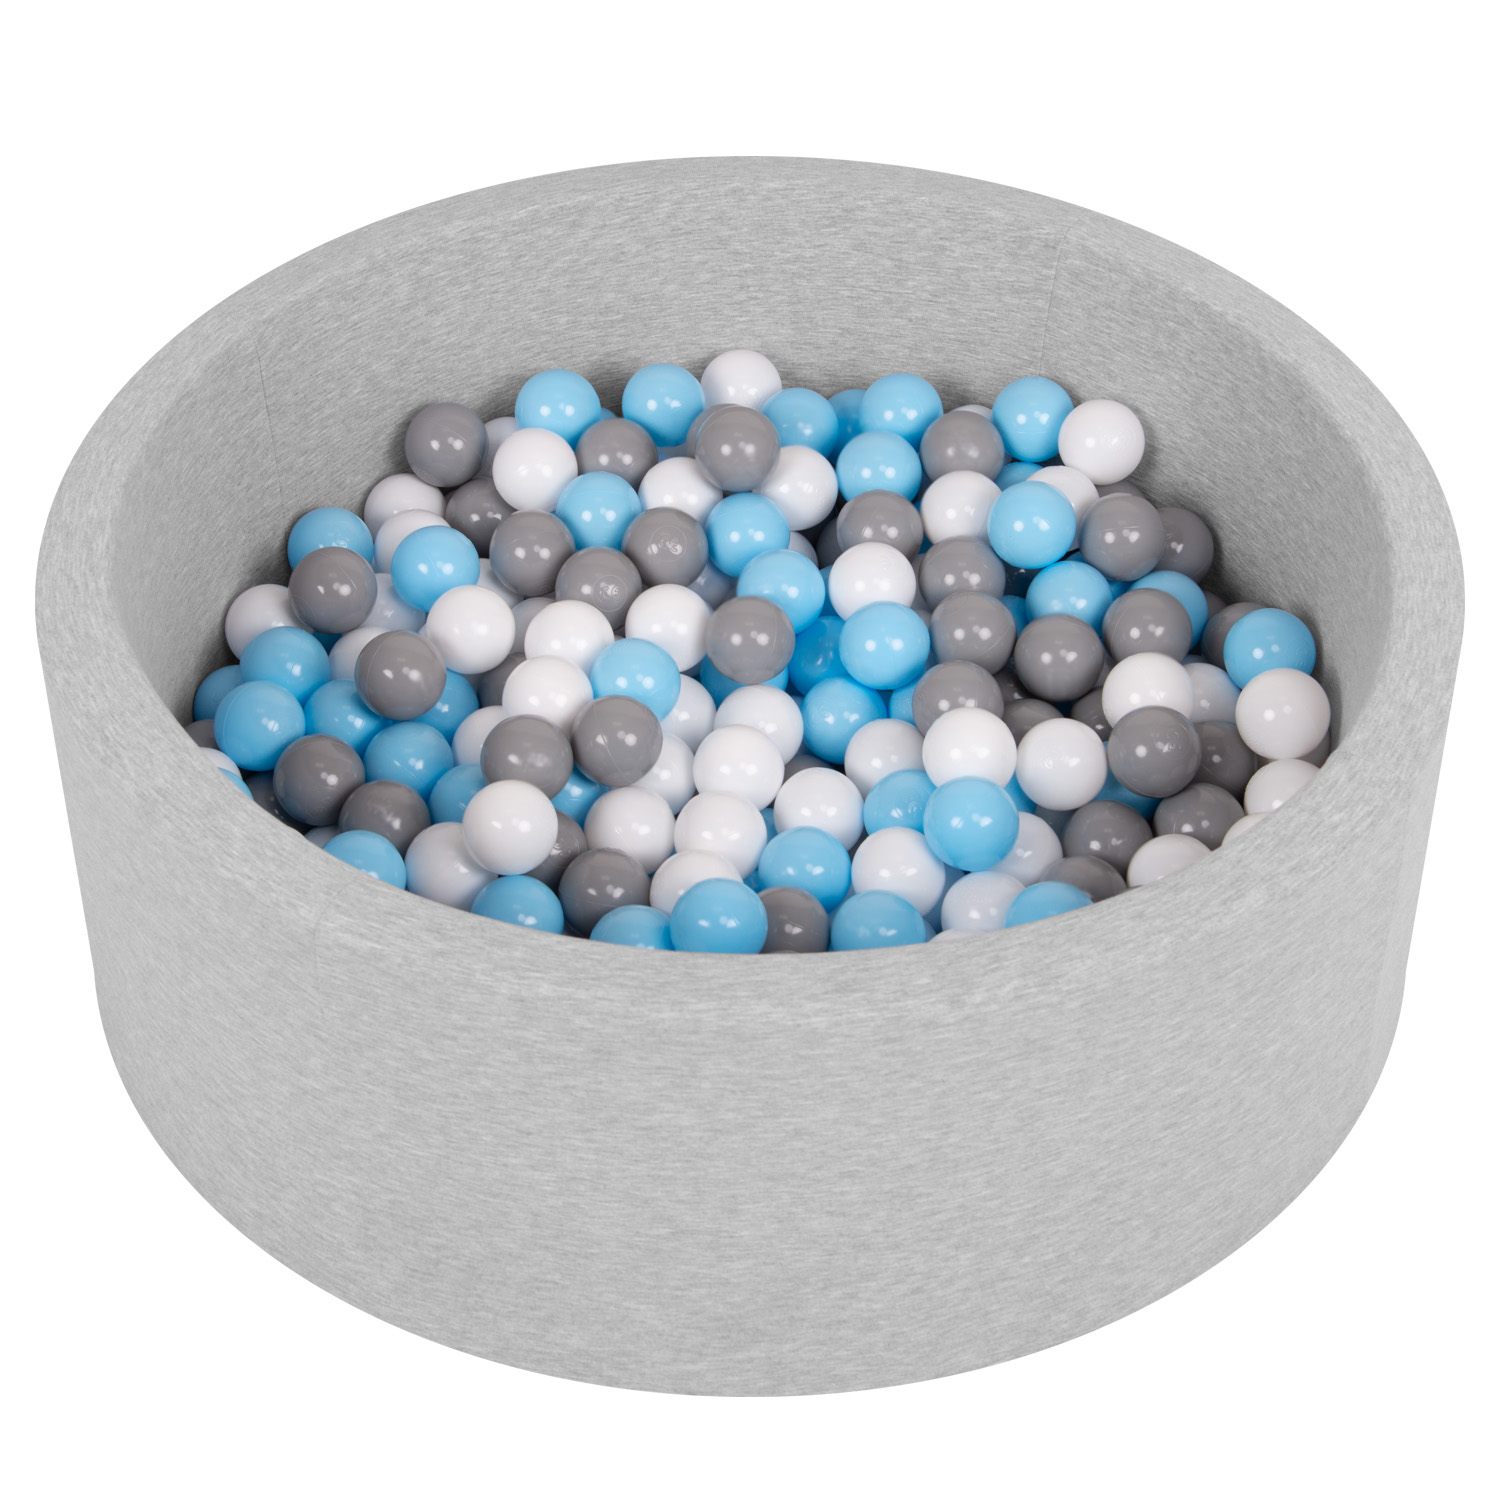 Selonis-Soft-Ball-Pit-Pool-Round-90x30cm-for-Baby-Toddler-200-Balls-Foam miniatuur 12